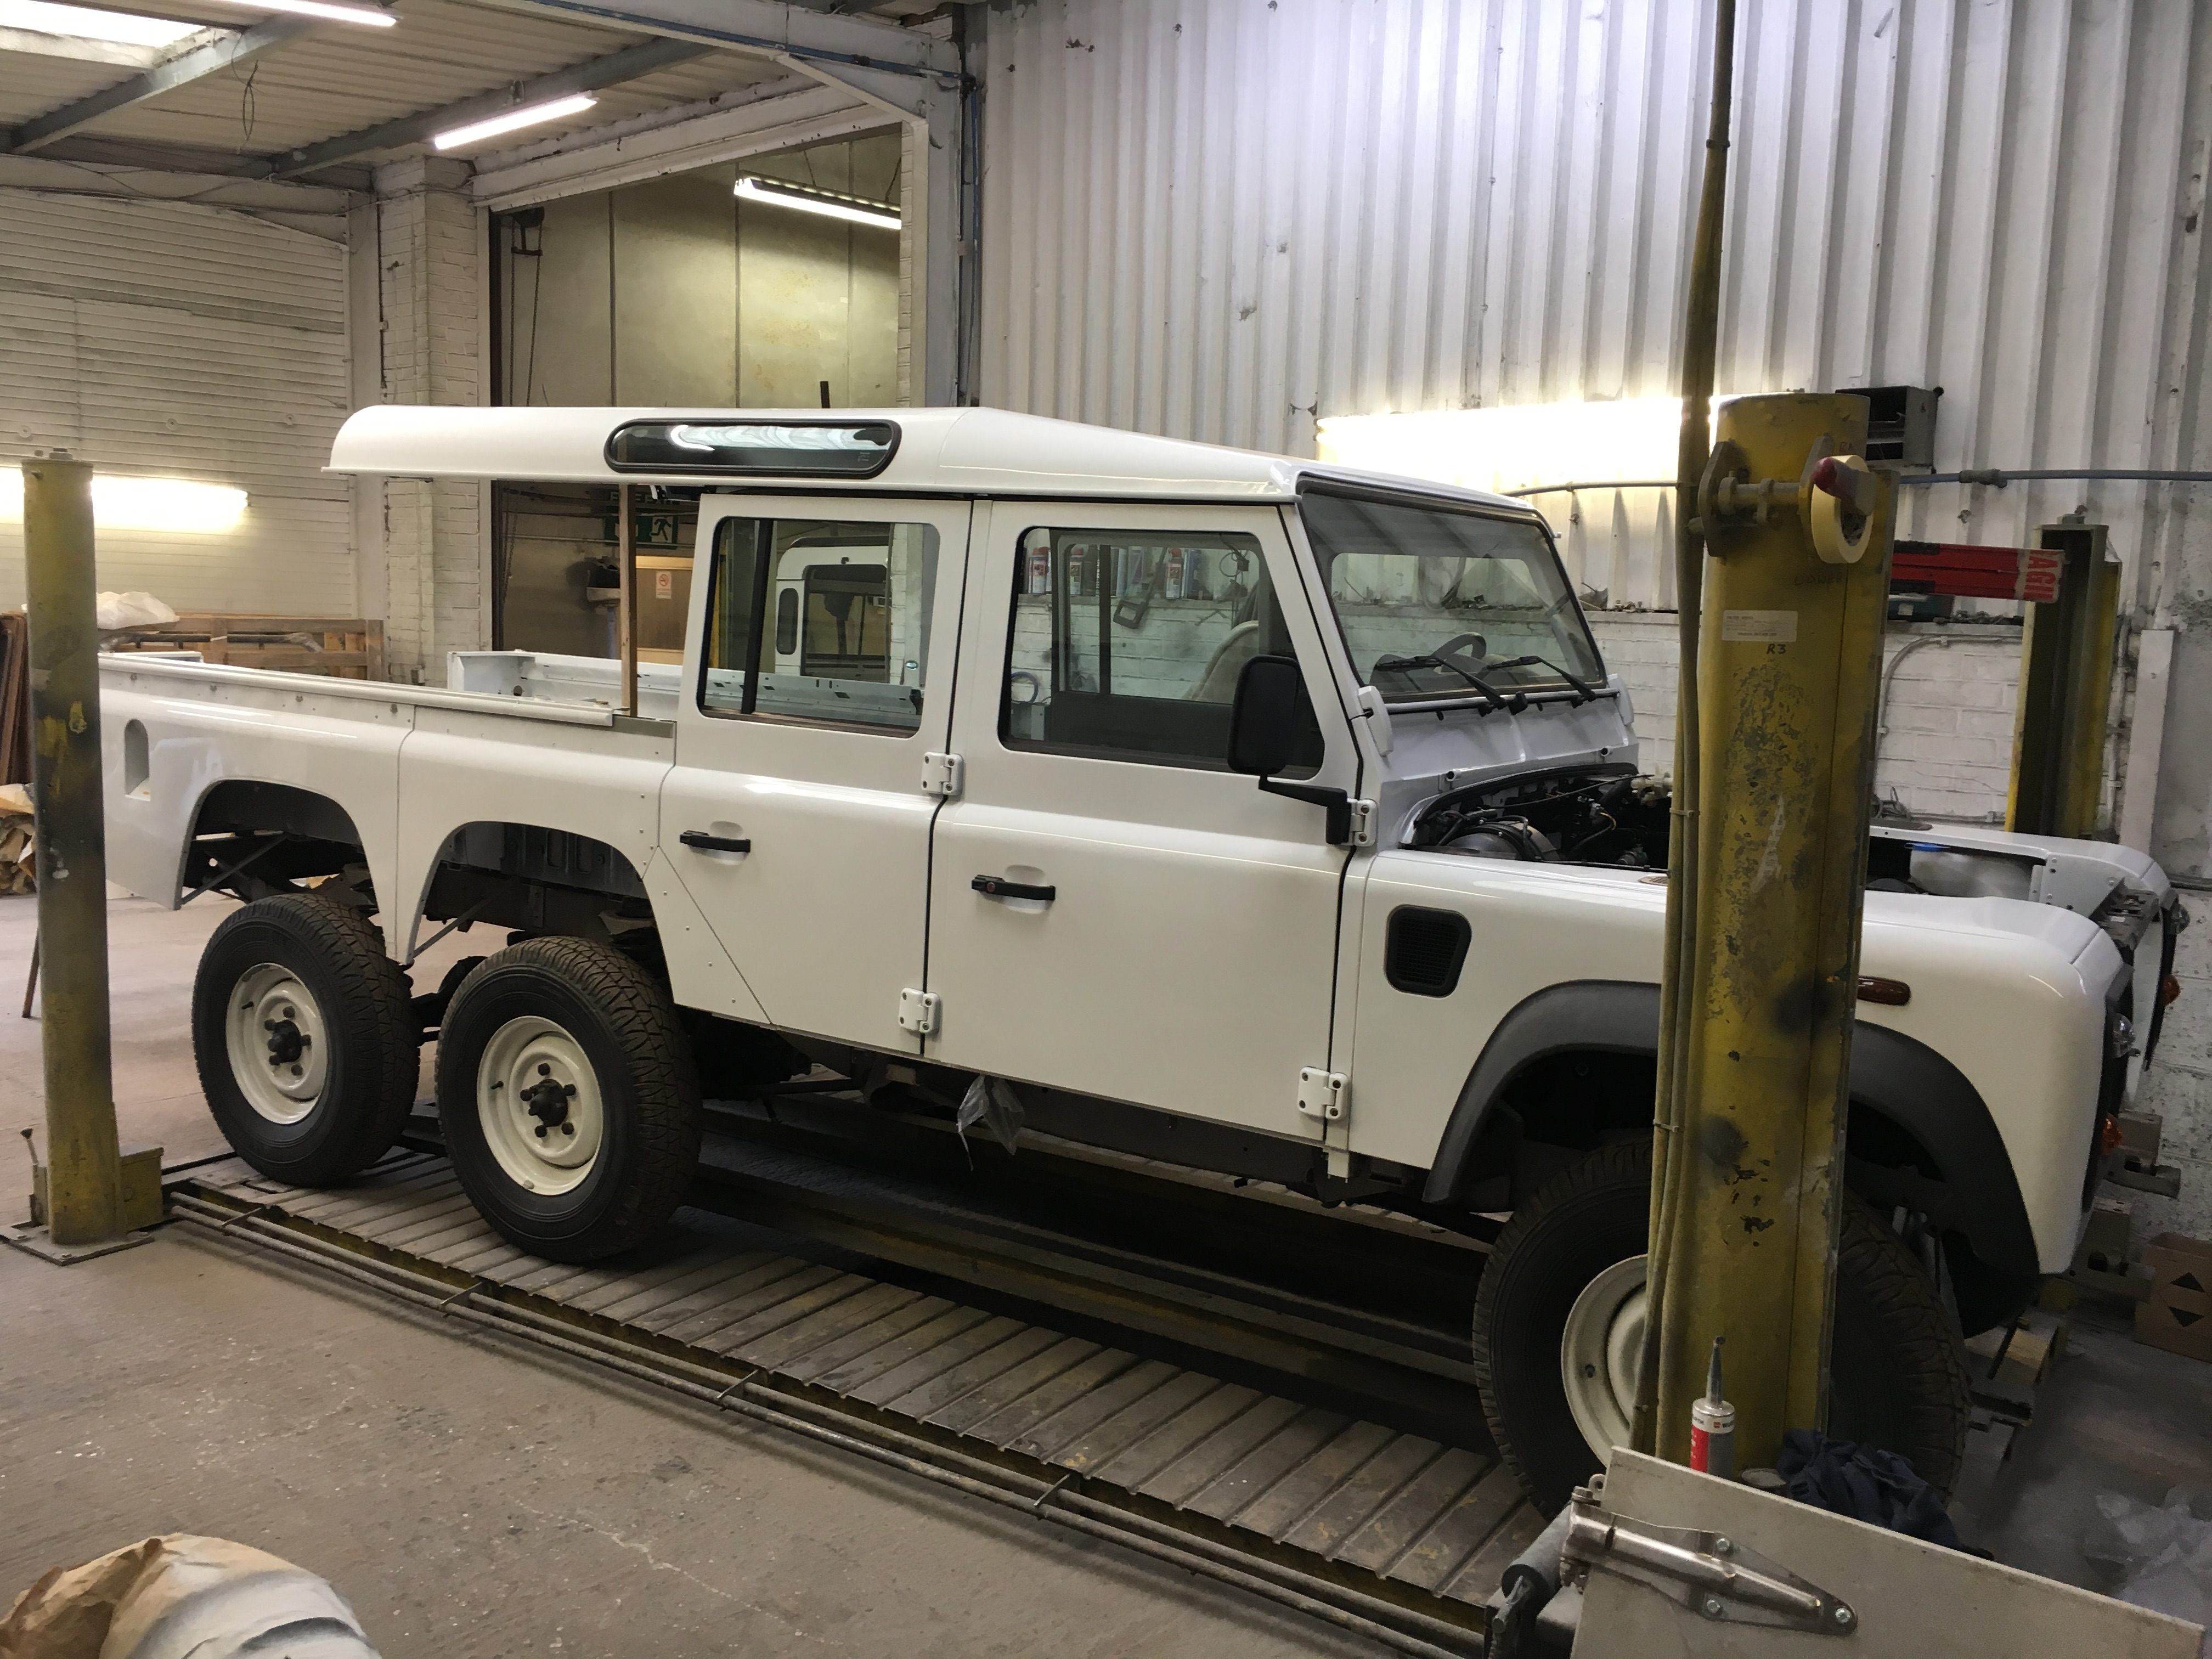 Hhh Heritage 1984 Land Rover Defender Custom 6x6 Hhh